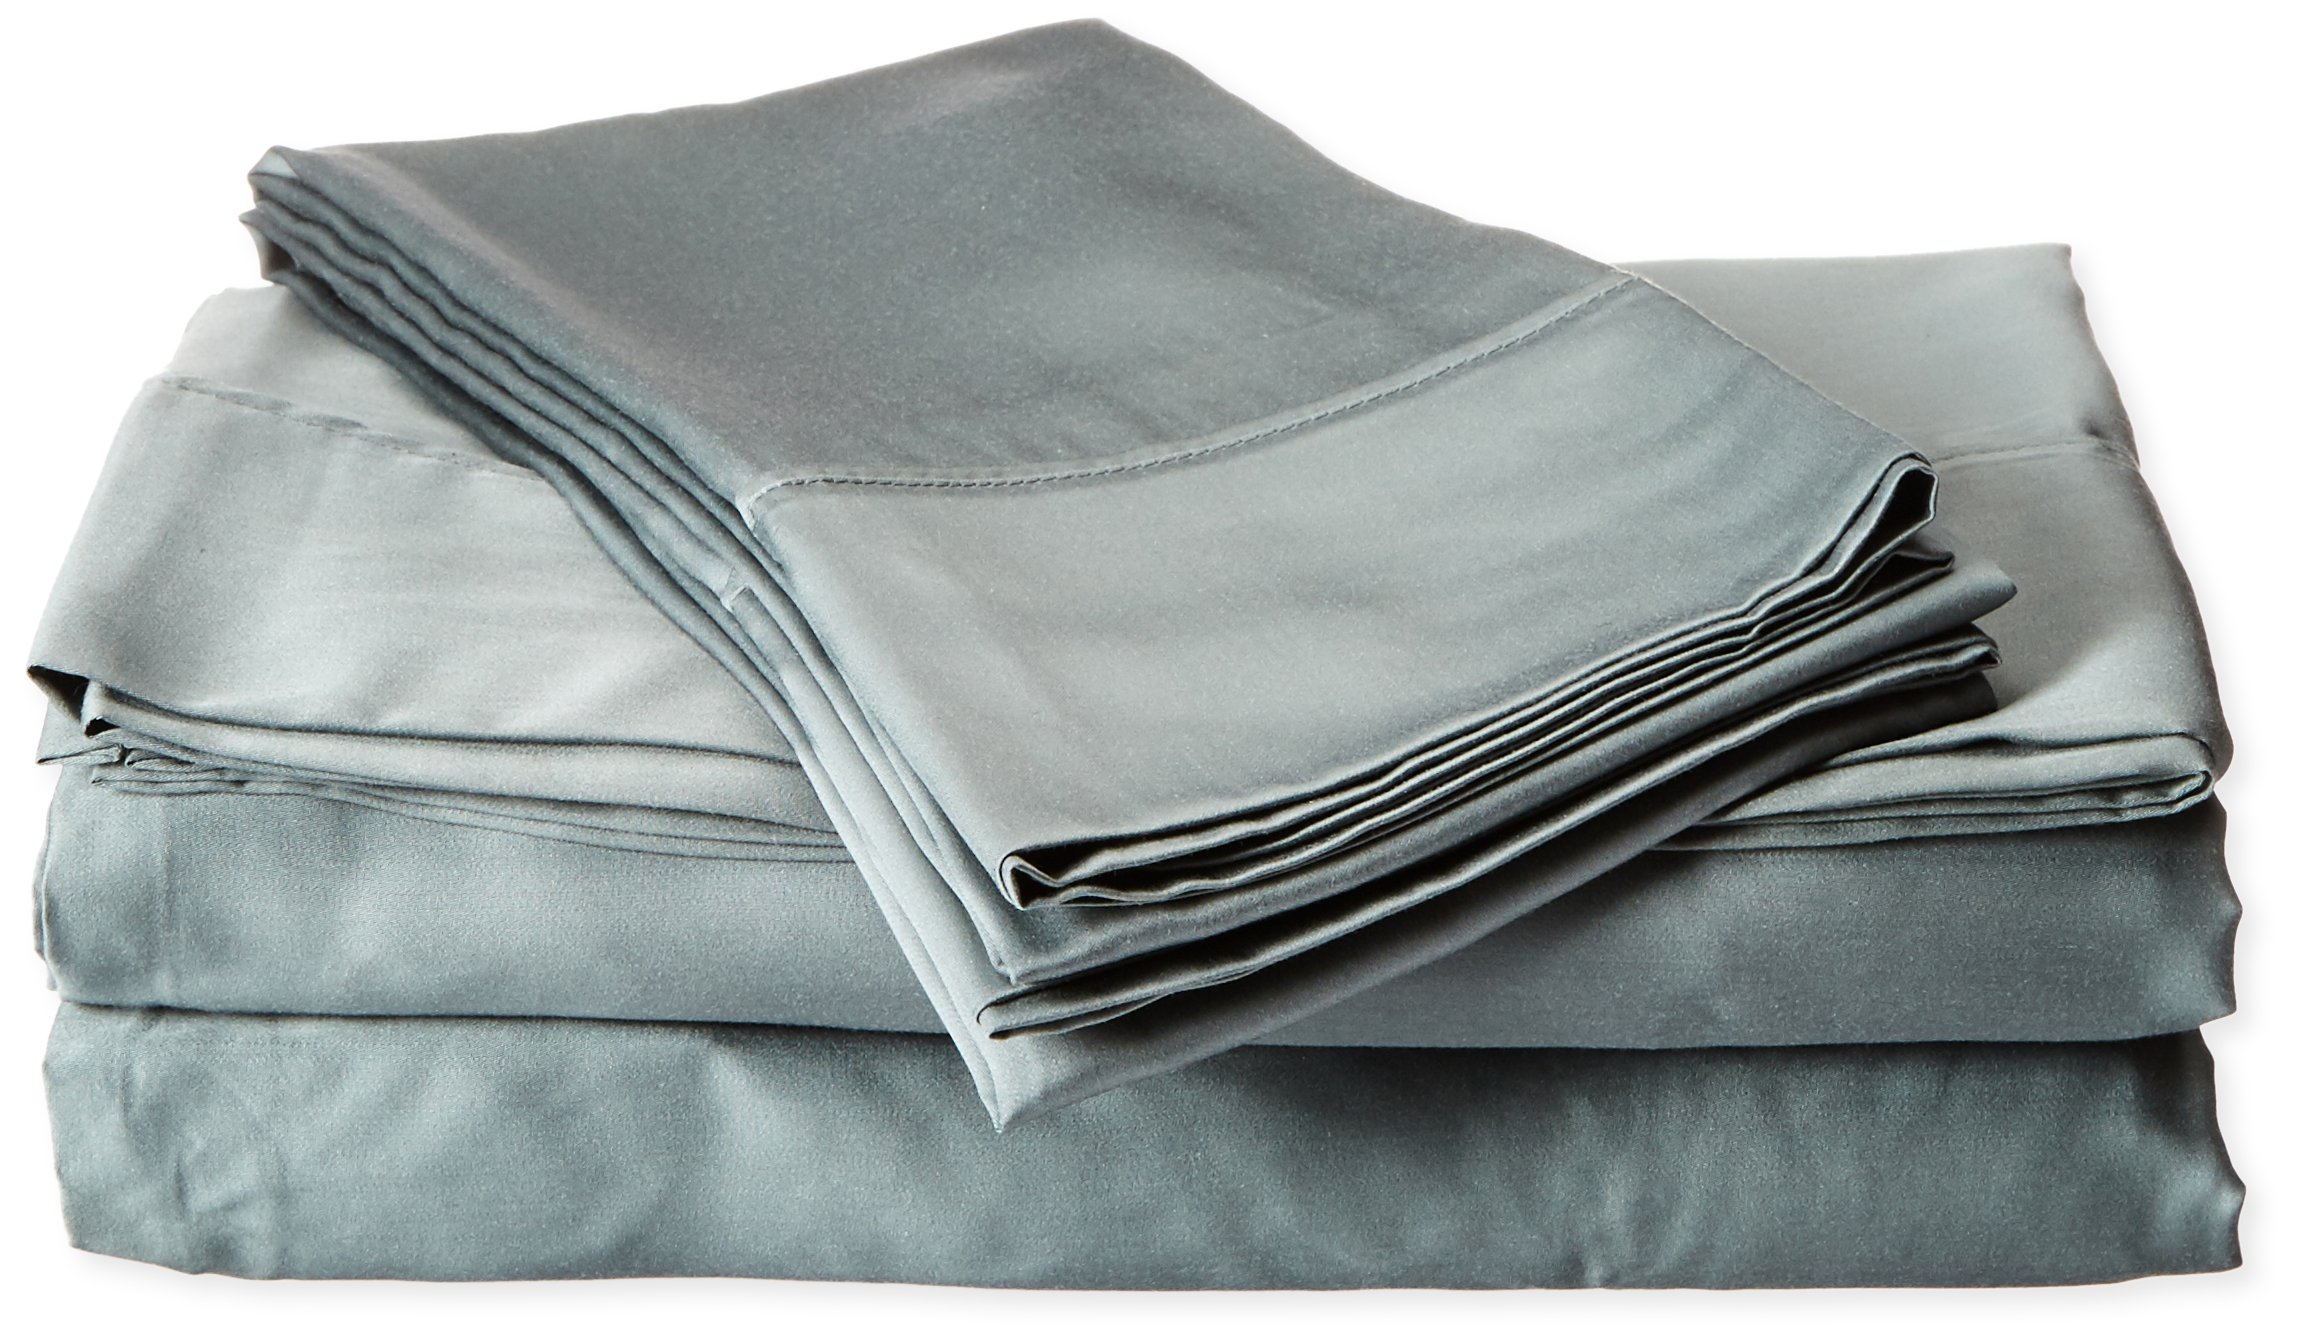 Brielle 100-Percent Sateen Modal from Beech Pillow Case Set, Standard, Peacock - Standard Pillow Case Set Includes 2 Standard Pillow cases (21x30 in.) Materials: Modal (100-percent Rayon from Beech) Care Instructions Machine Wash Cold, Gentle Cycle, Tumble Dry Low, Do not completely dry and remove immediately to avoid wrinkles - sheet-sets, bedroom-sheets-comforters, bedroom - 8106mb%2B7cmL -